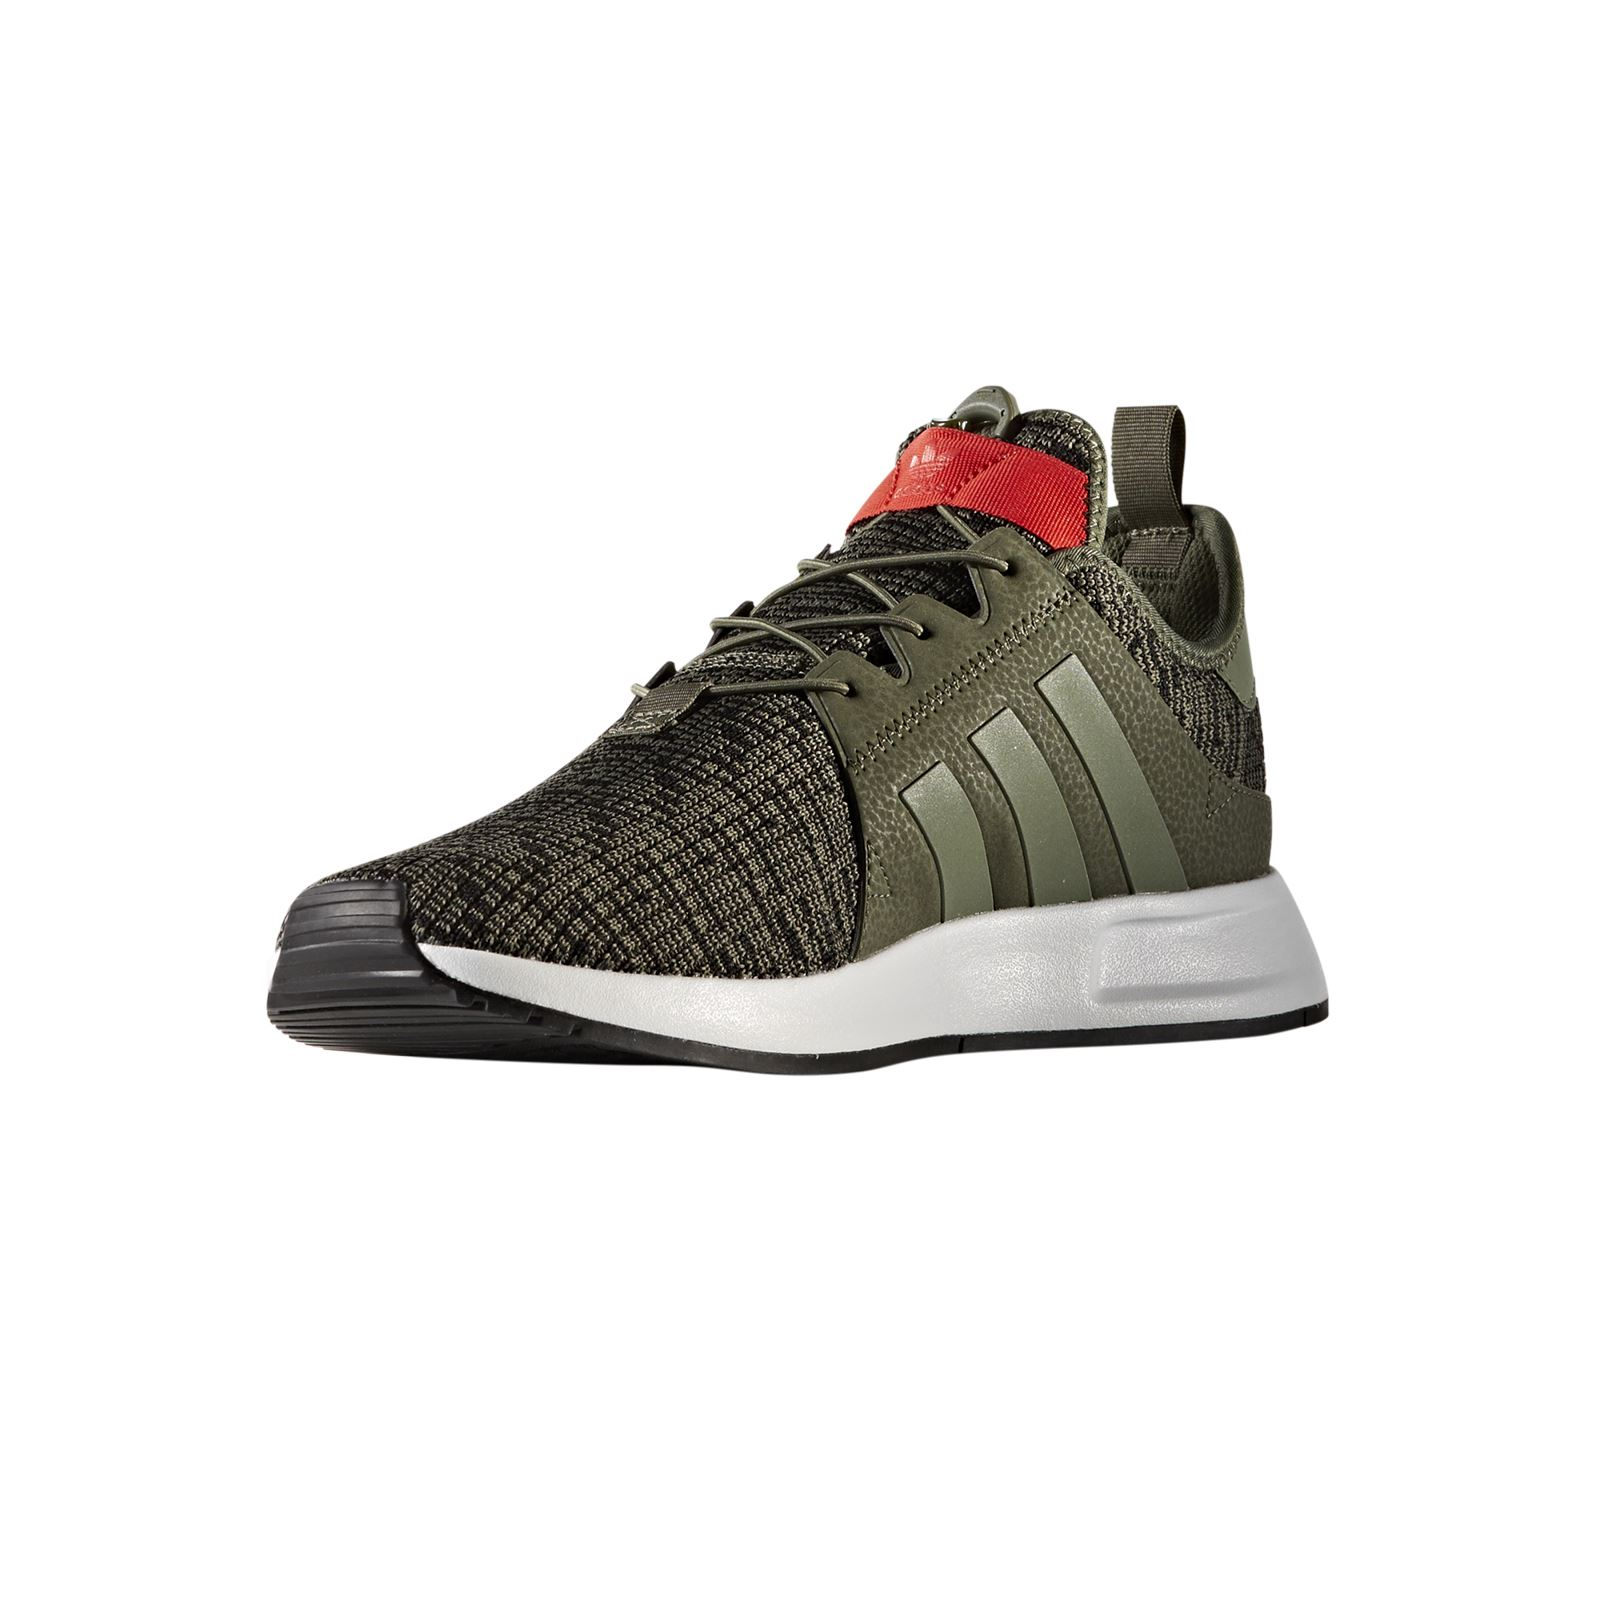 ece37e11fc0932 adidas eqt support. Just browse our adidas originals arrival ultra boost  eqt support future boost white black pink man women ...